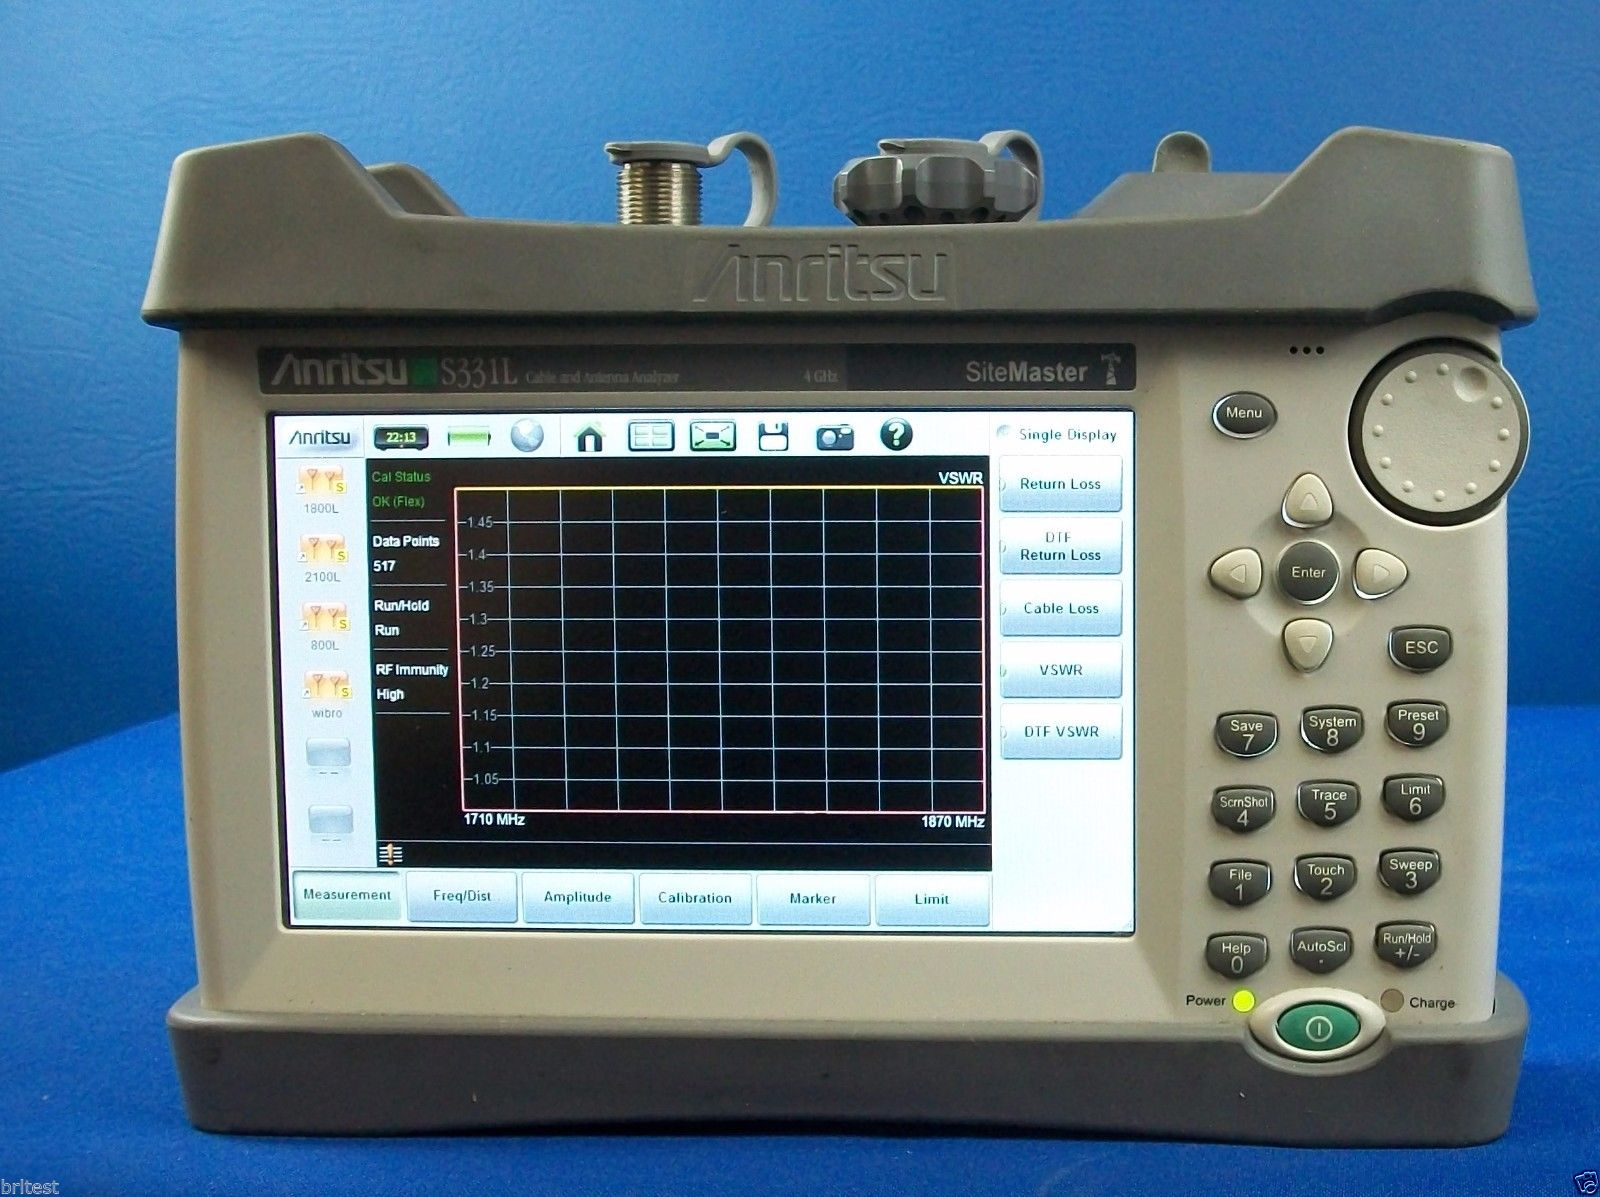 S331L - Anritsu Spectrum Analyzers